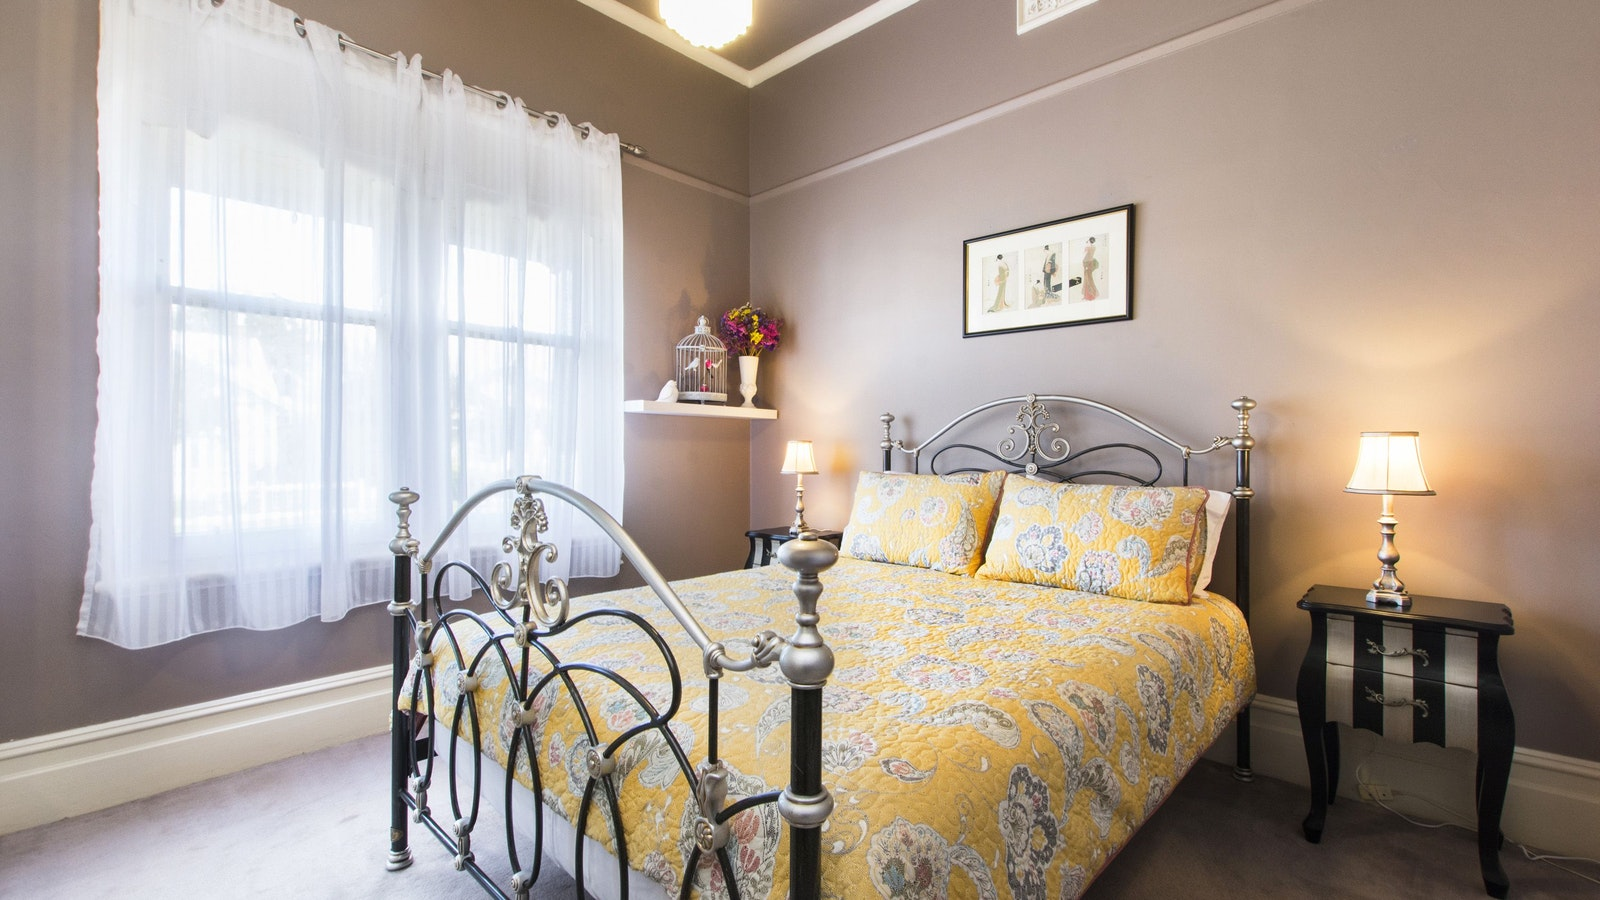 stunning second bedroom with delightful decor and quality bed linen